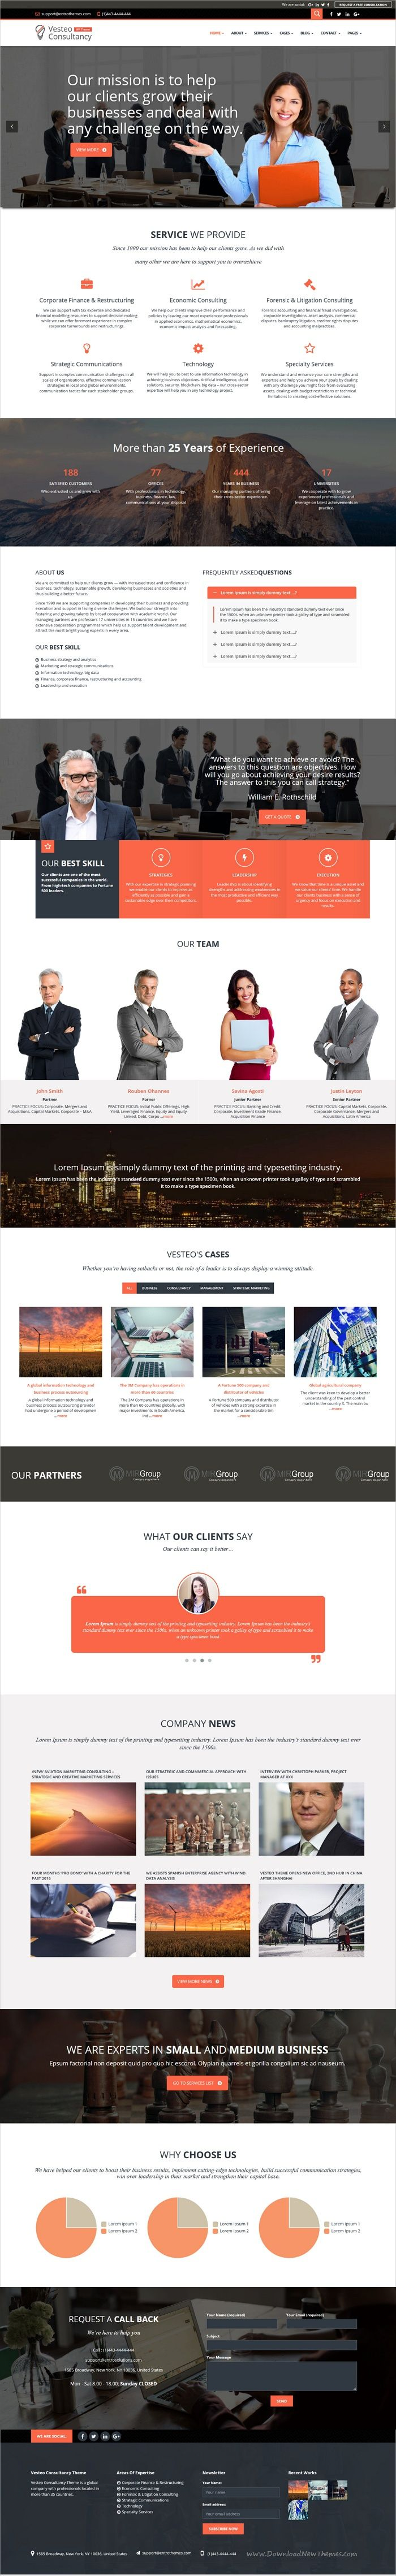 Vesteo is ultimate 2in1 responsive #WordPress theme for #webdev accounting #companies, #consultants, financial advisors, law firms, and other business websites download now➩ https://themeforest.net/item/vesteo-business-multipurpose-responsive-theme/19210818?ref=Datasata